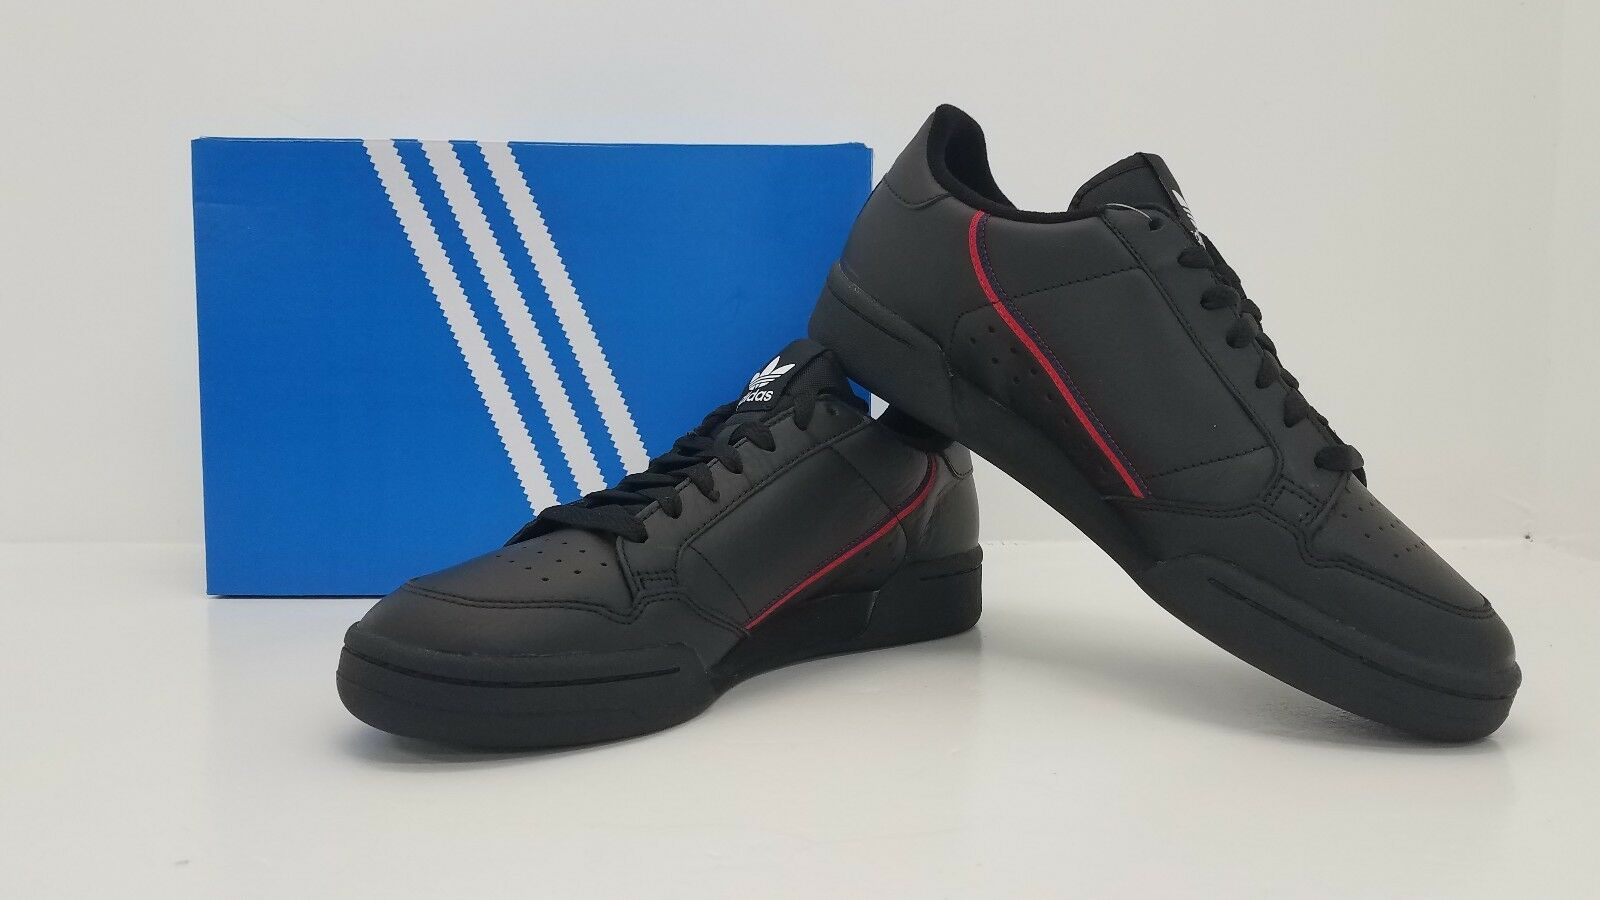 Adidas ORIGINALS MENS RASCAL CONTINENTAL 80 BLACK SCAR B41672 - BRAND NEW IN BOX